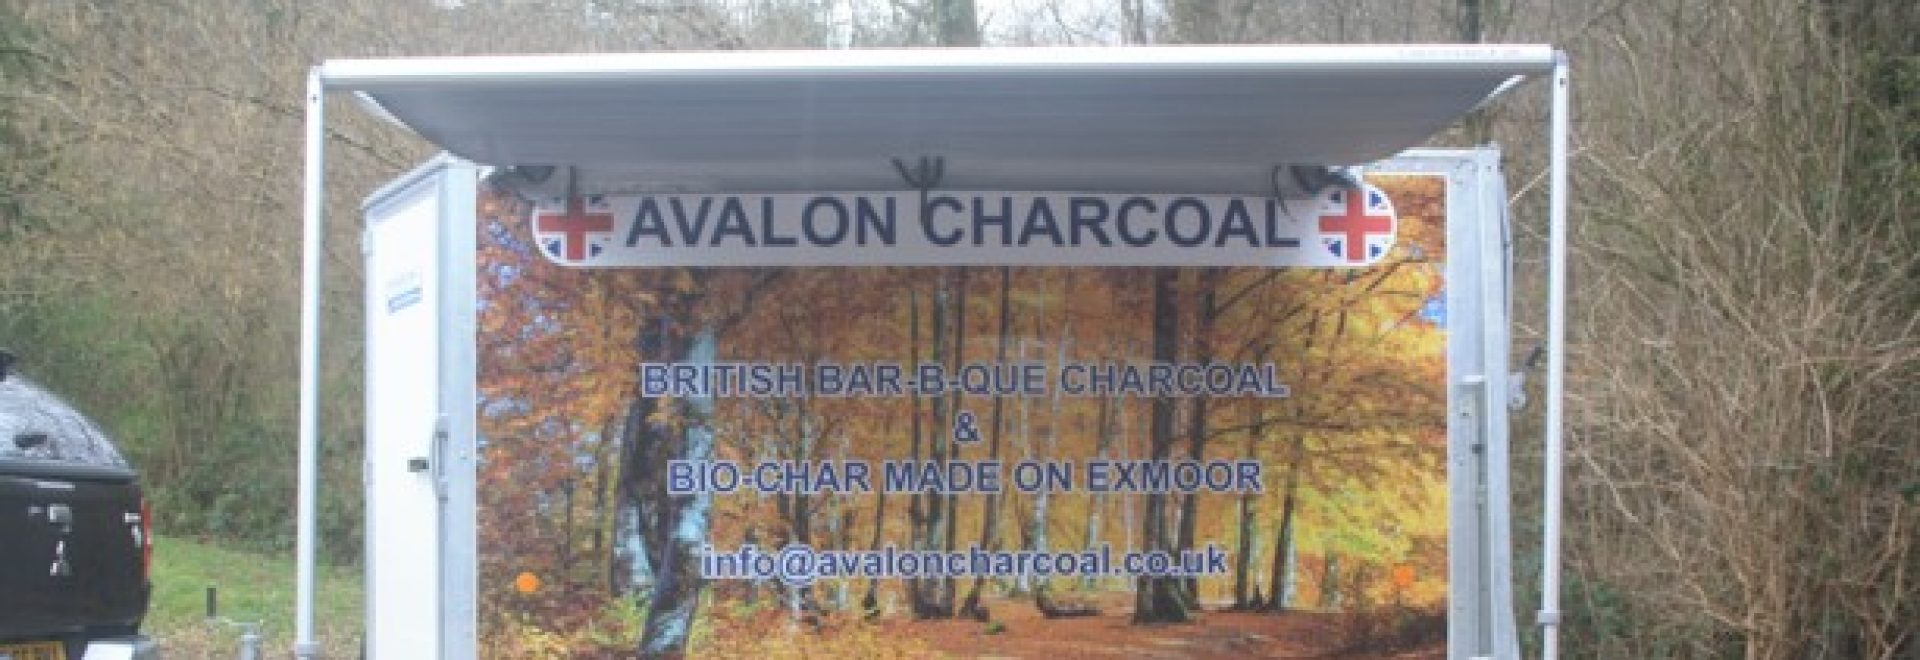 Avalon Charcoal and Bio-char